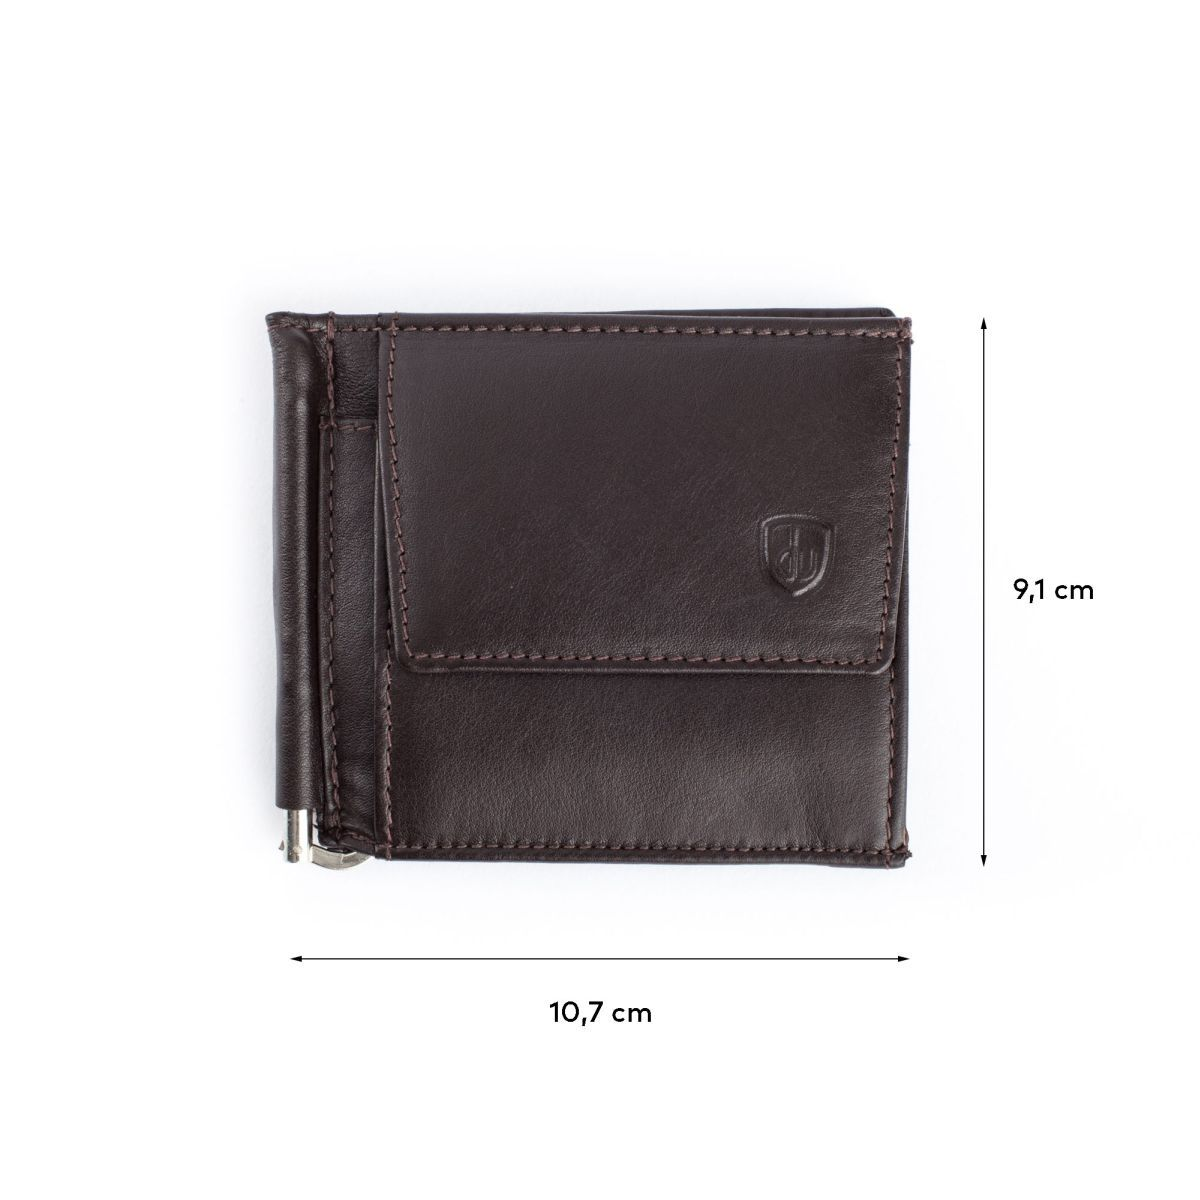 dv Small Leather Wallet With Clips And Coin Pocket - Dark Brown